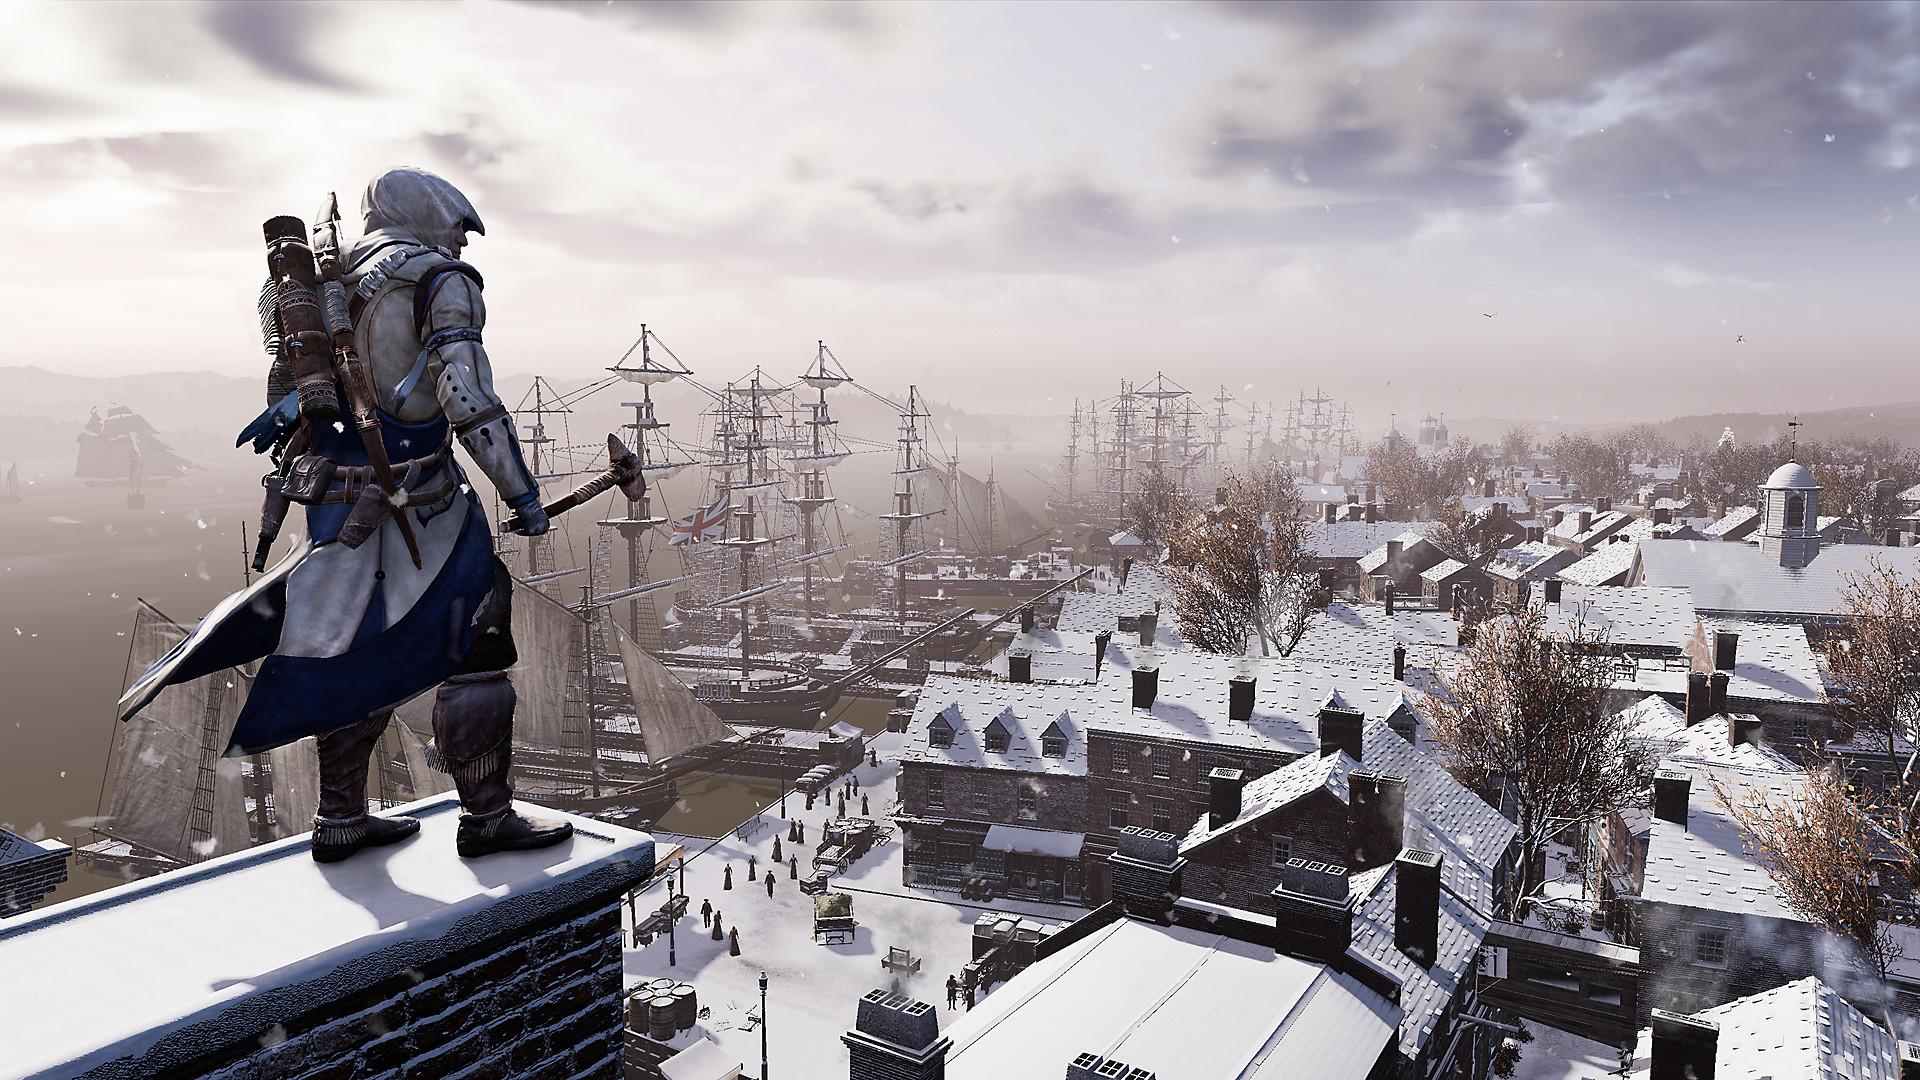 Partida de Assassin's Creed III: Remastered